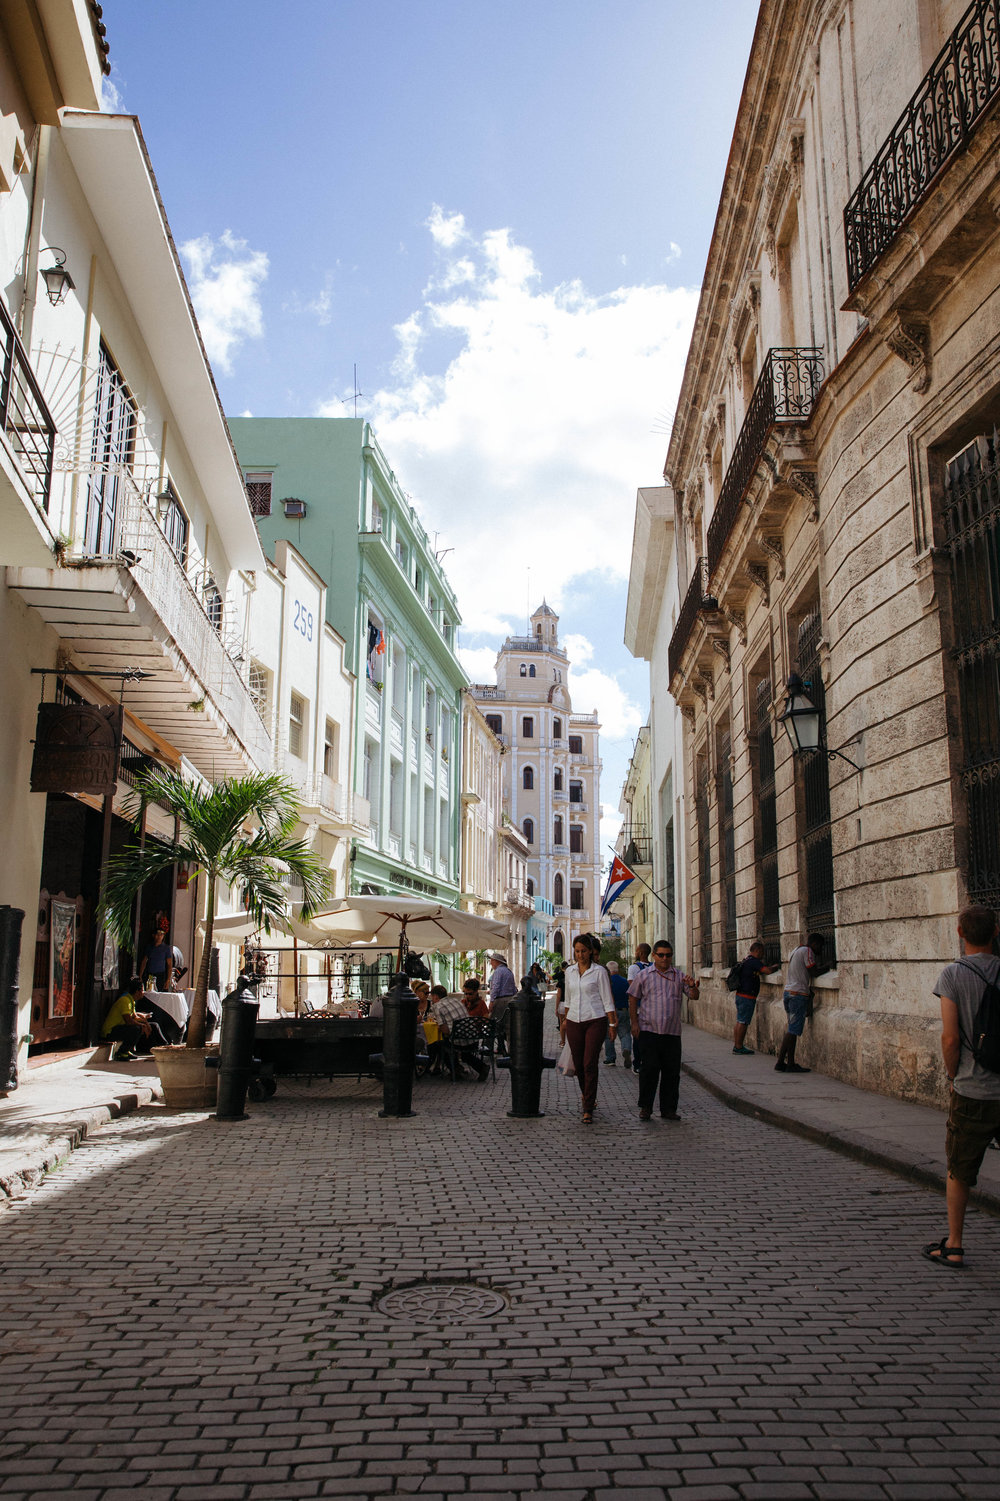 The cobblestone streets of Old Havana, newly renovated in Cuba.